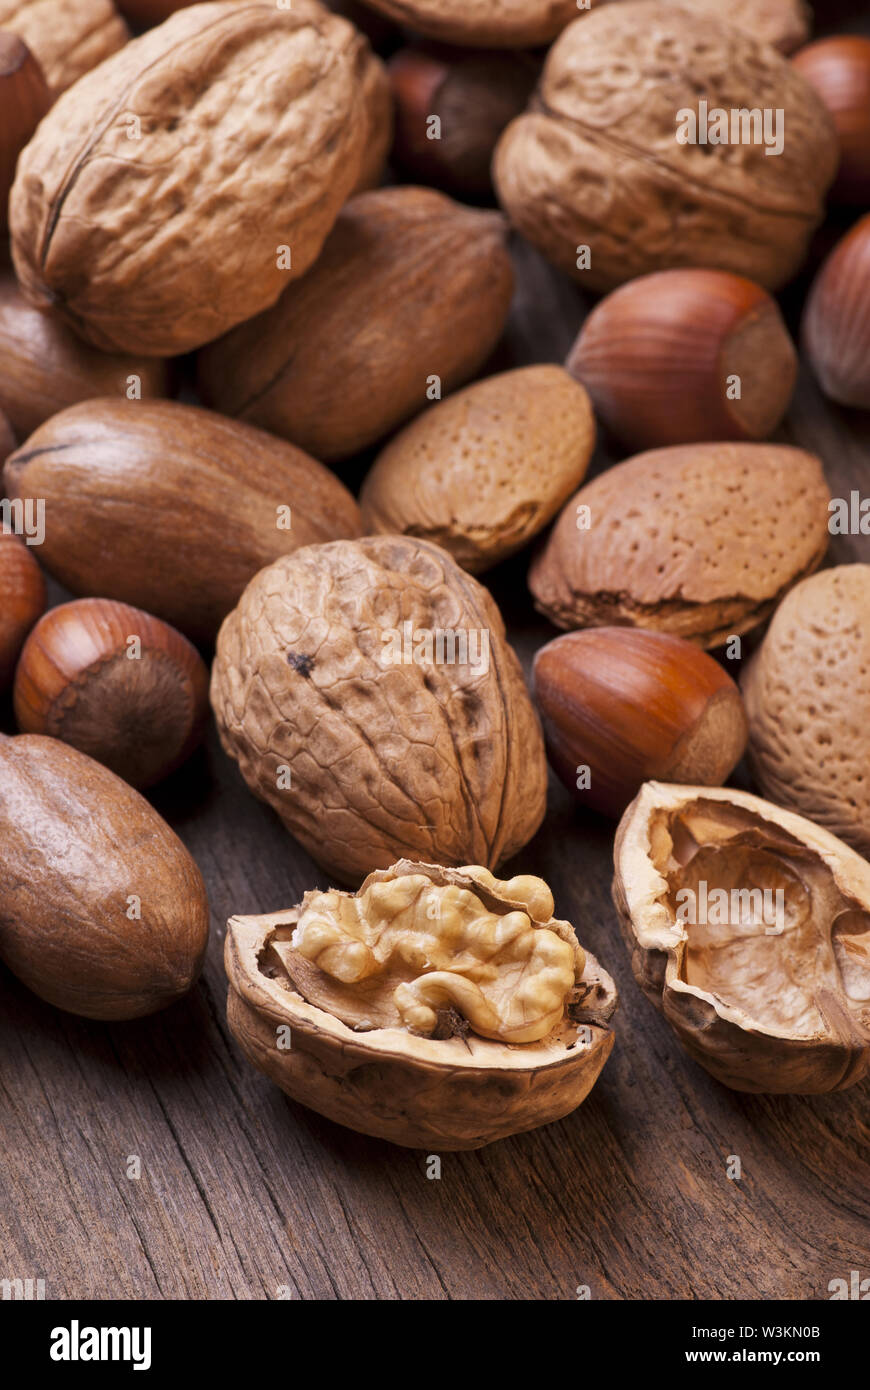 closeup of different types of dried fruit including pecans, almonds and hazelnuts in shell on rustic wooden table Stock Photo